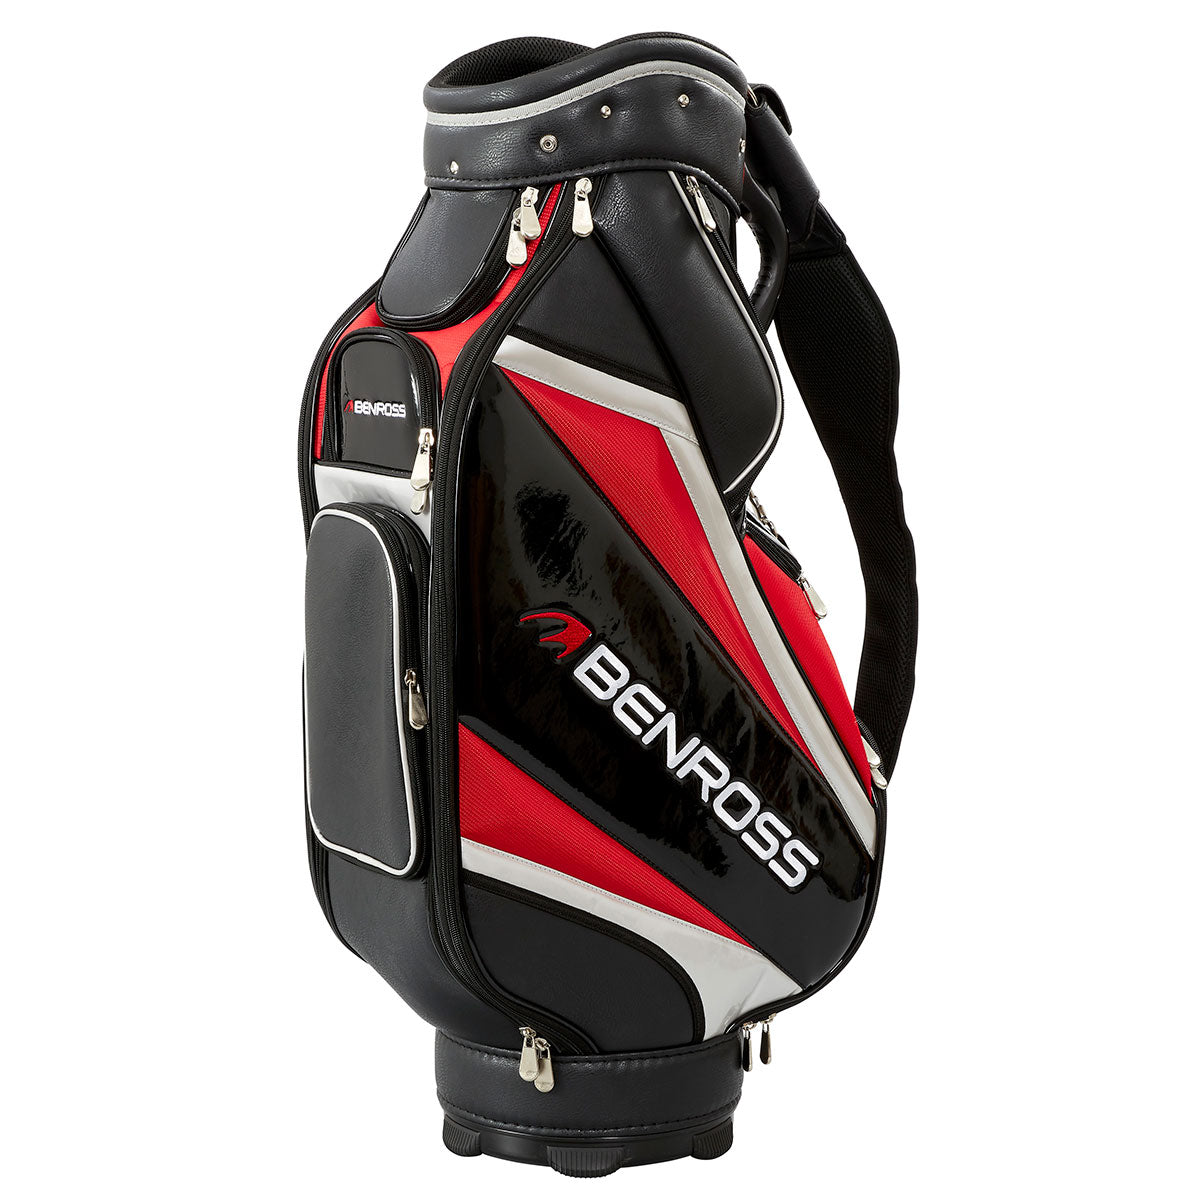 New Benross Premium Tour Staff Bag